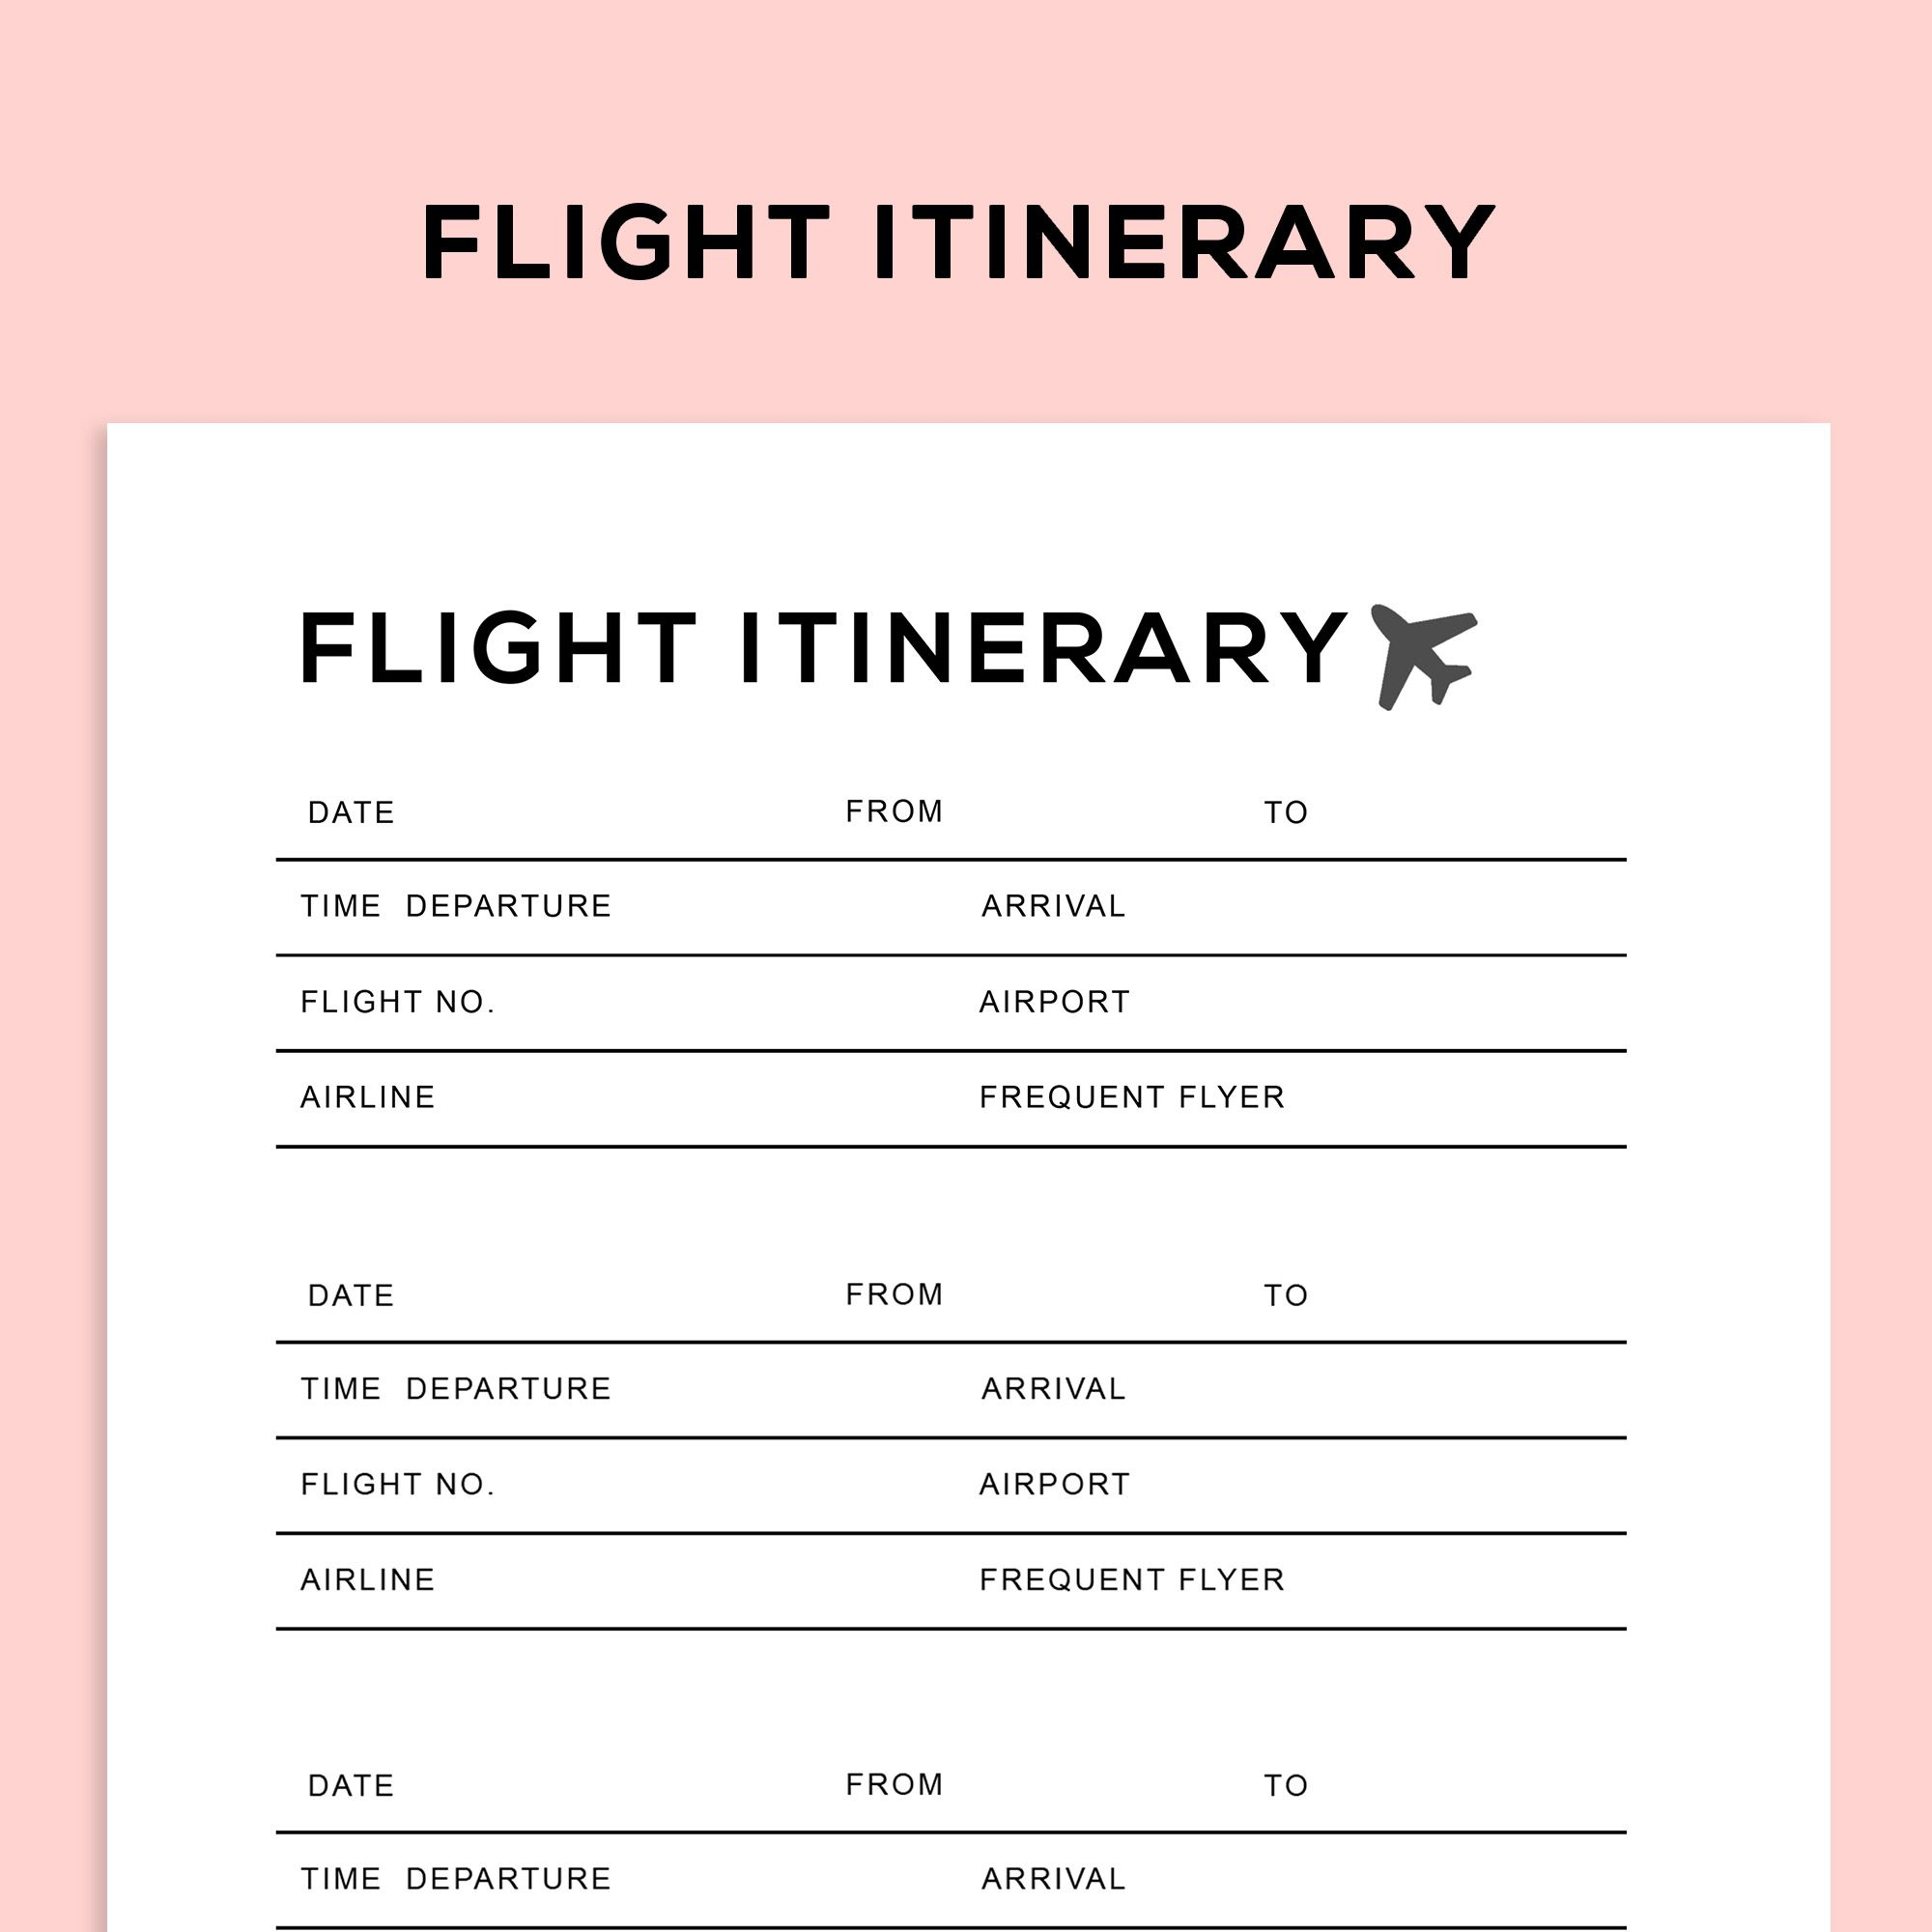 Travel Holiday Trip Planner Itinerary planner